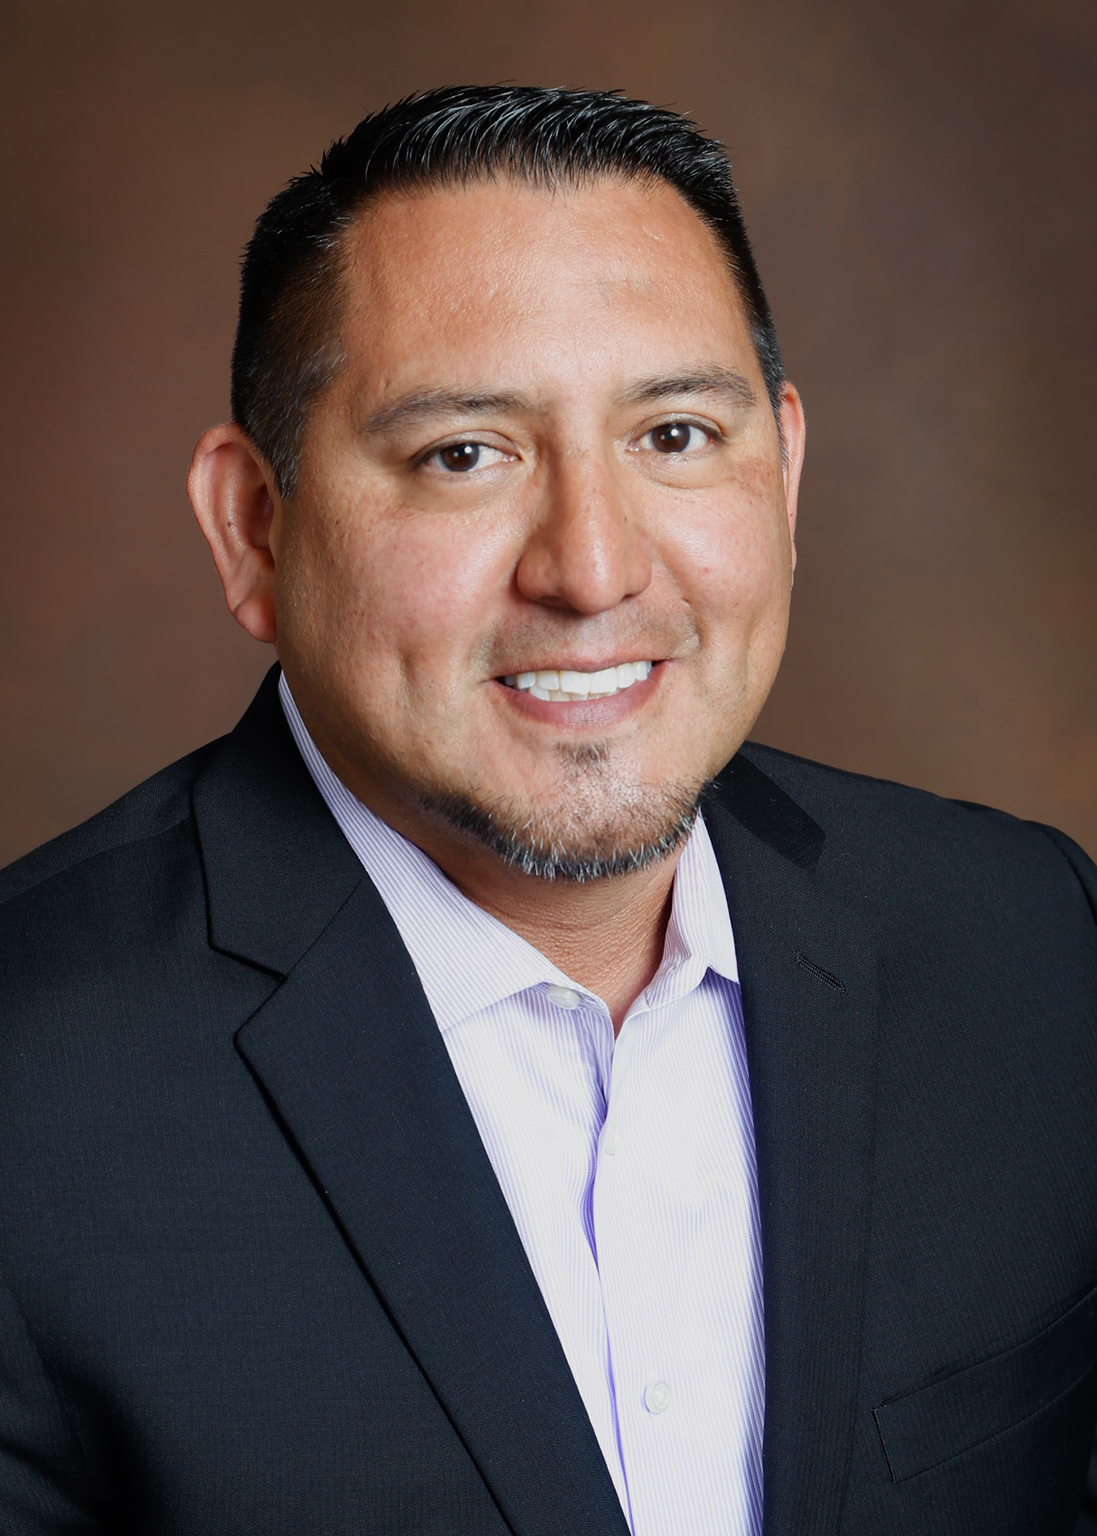 Gabriel Chacon - Vice President of Operations